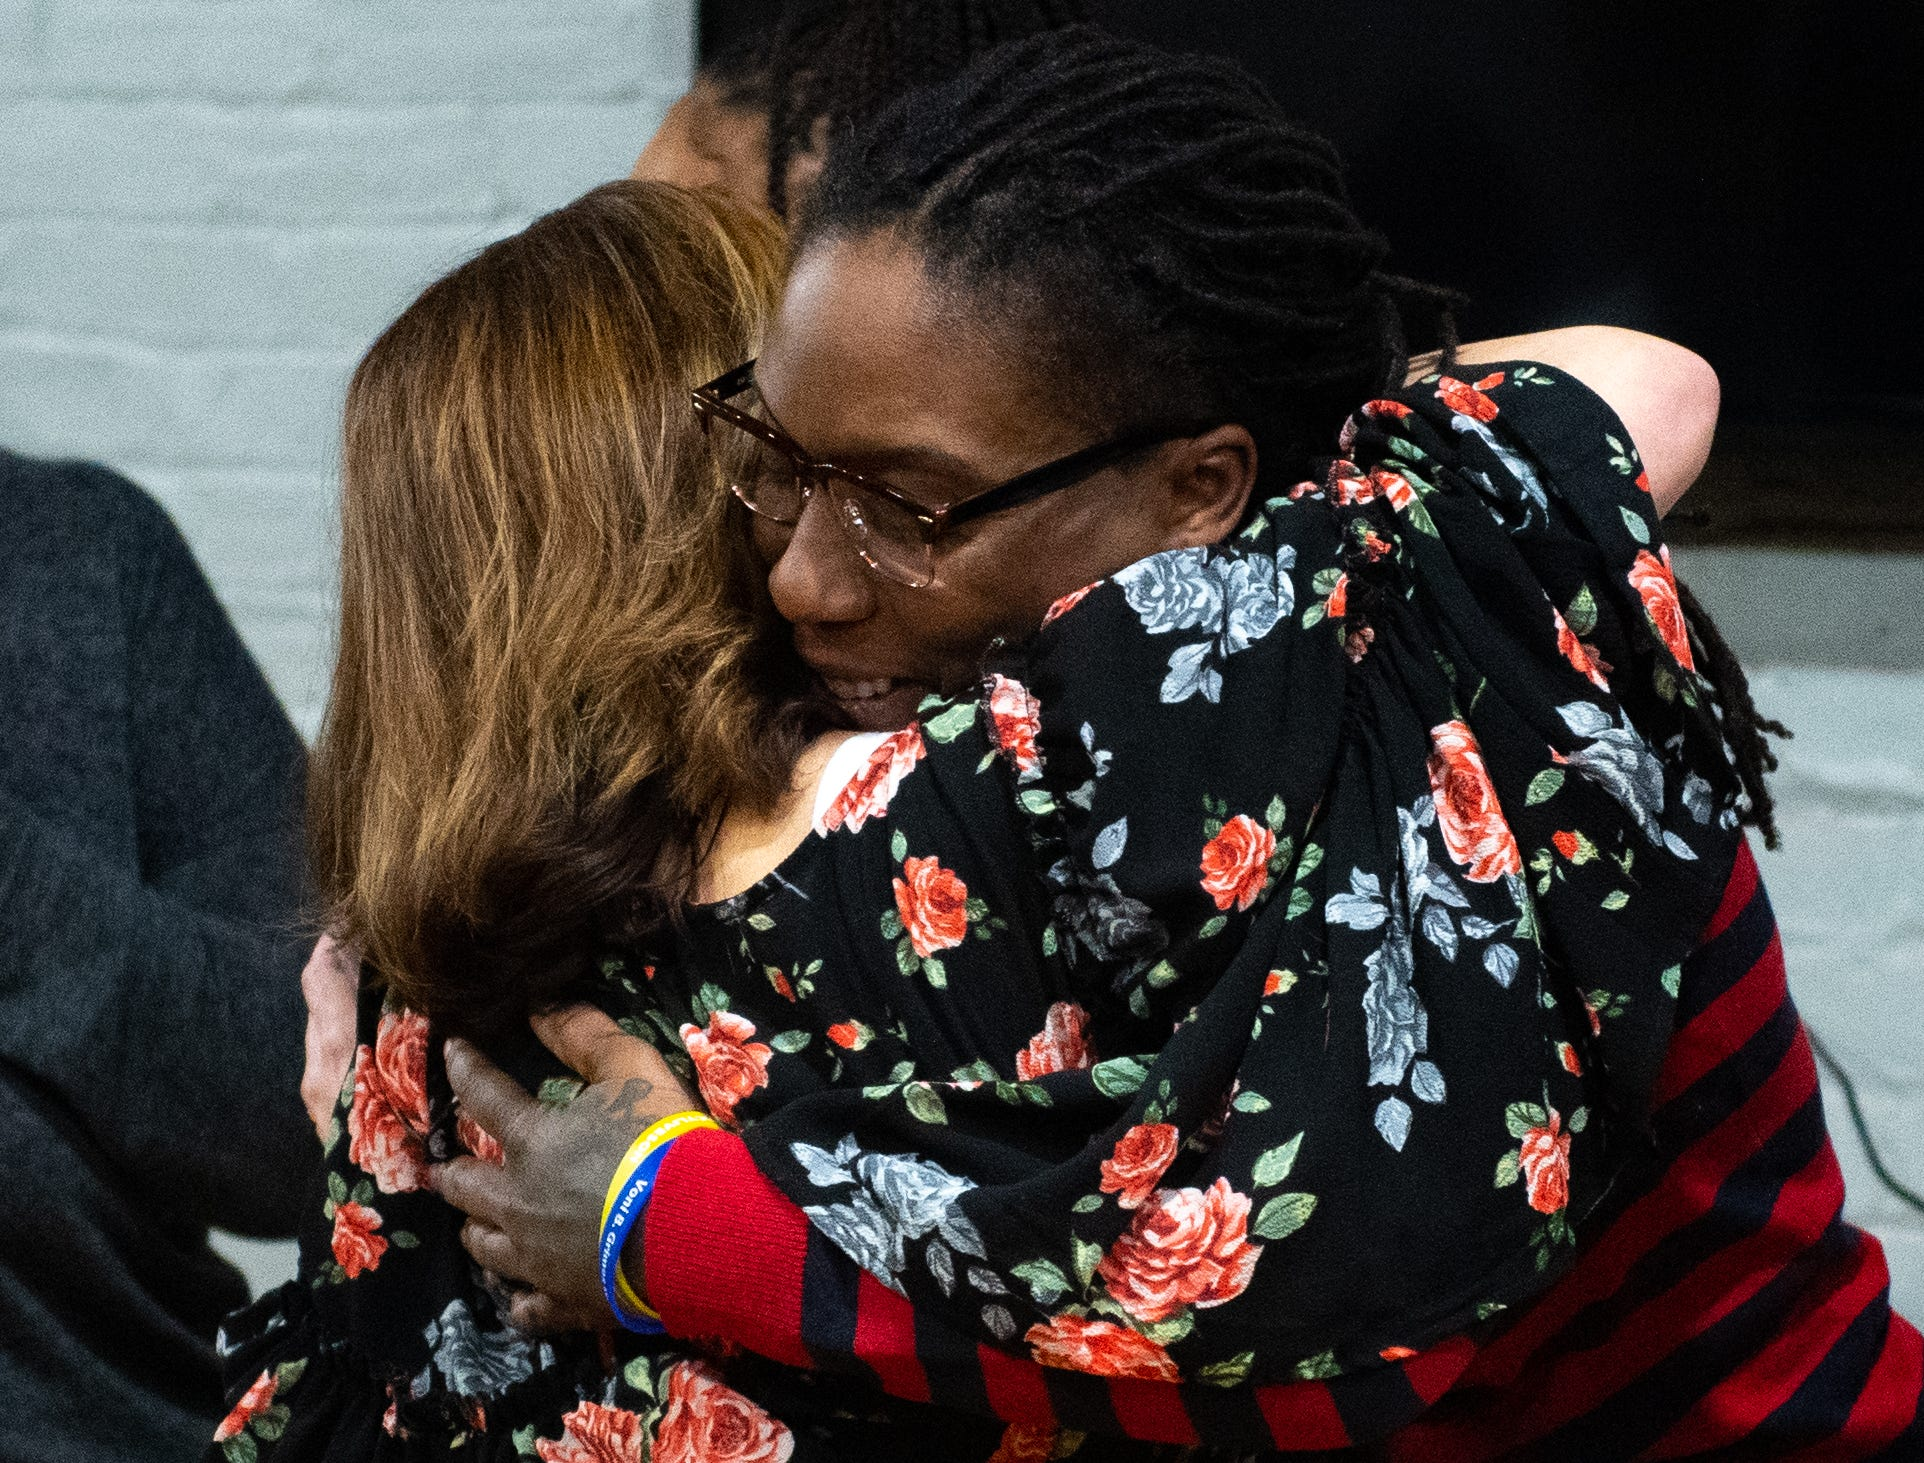 April Collier hugs supporters after her speech thanking the community for all of the help they've given her, March 7, 2019.